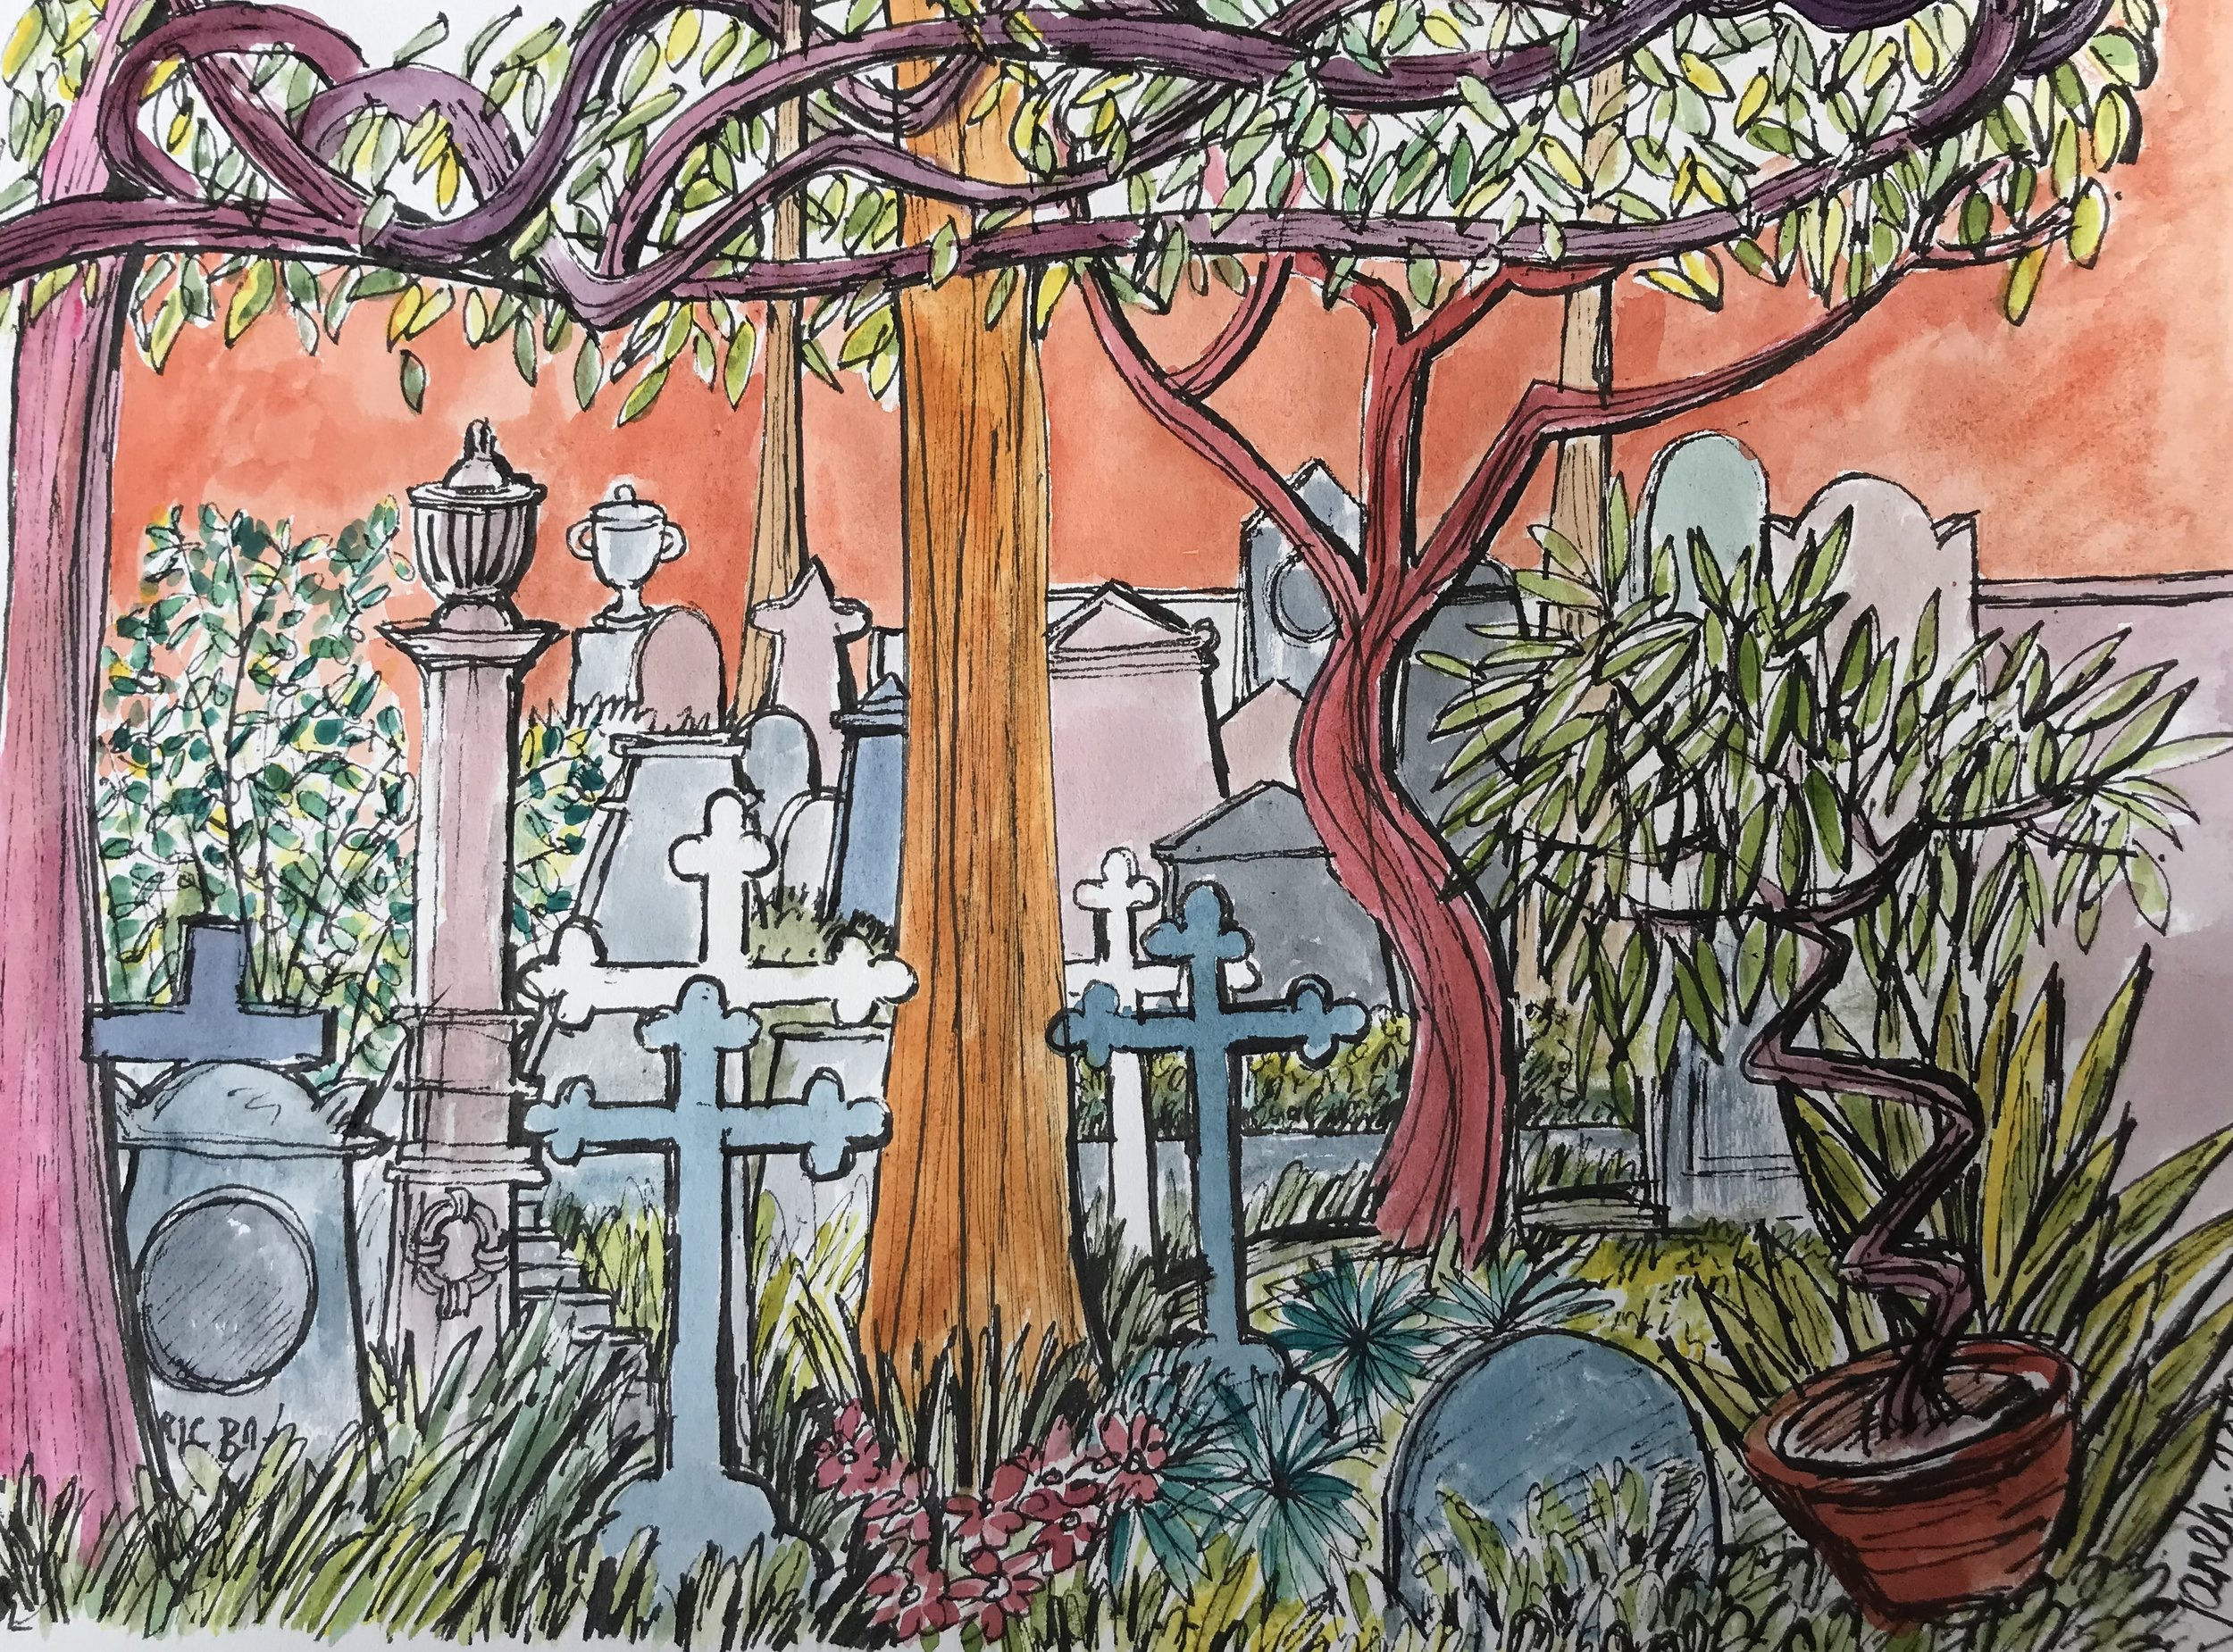 The Canopy v2 Non Catholic Cemetery of Rome. (watercolour, pen and ink). 54 x 43.5cm £70 framed.